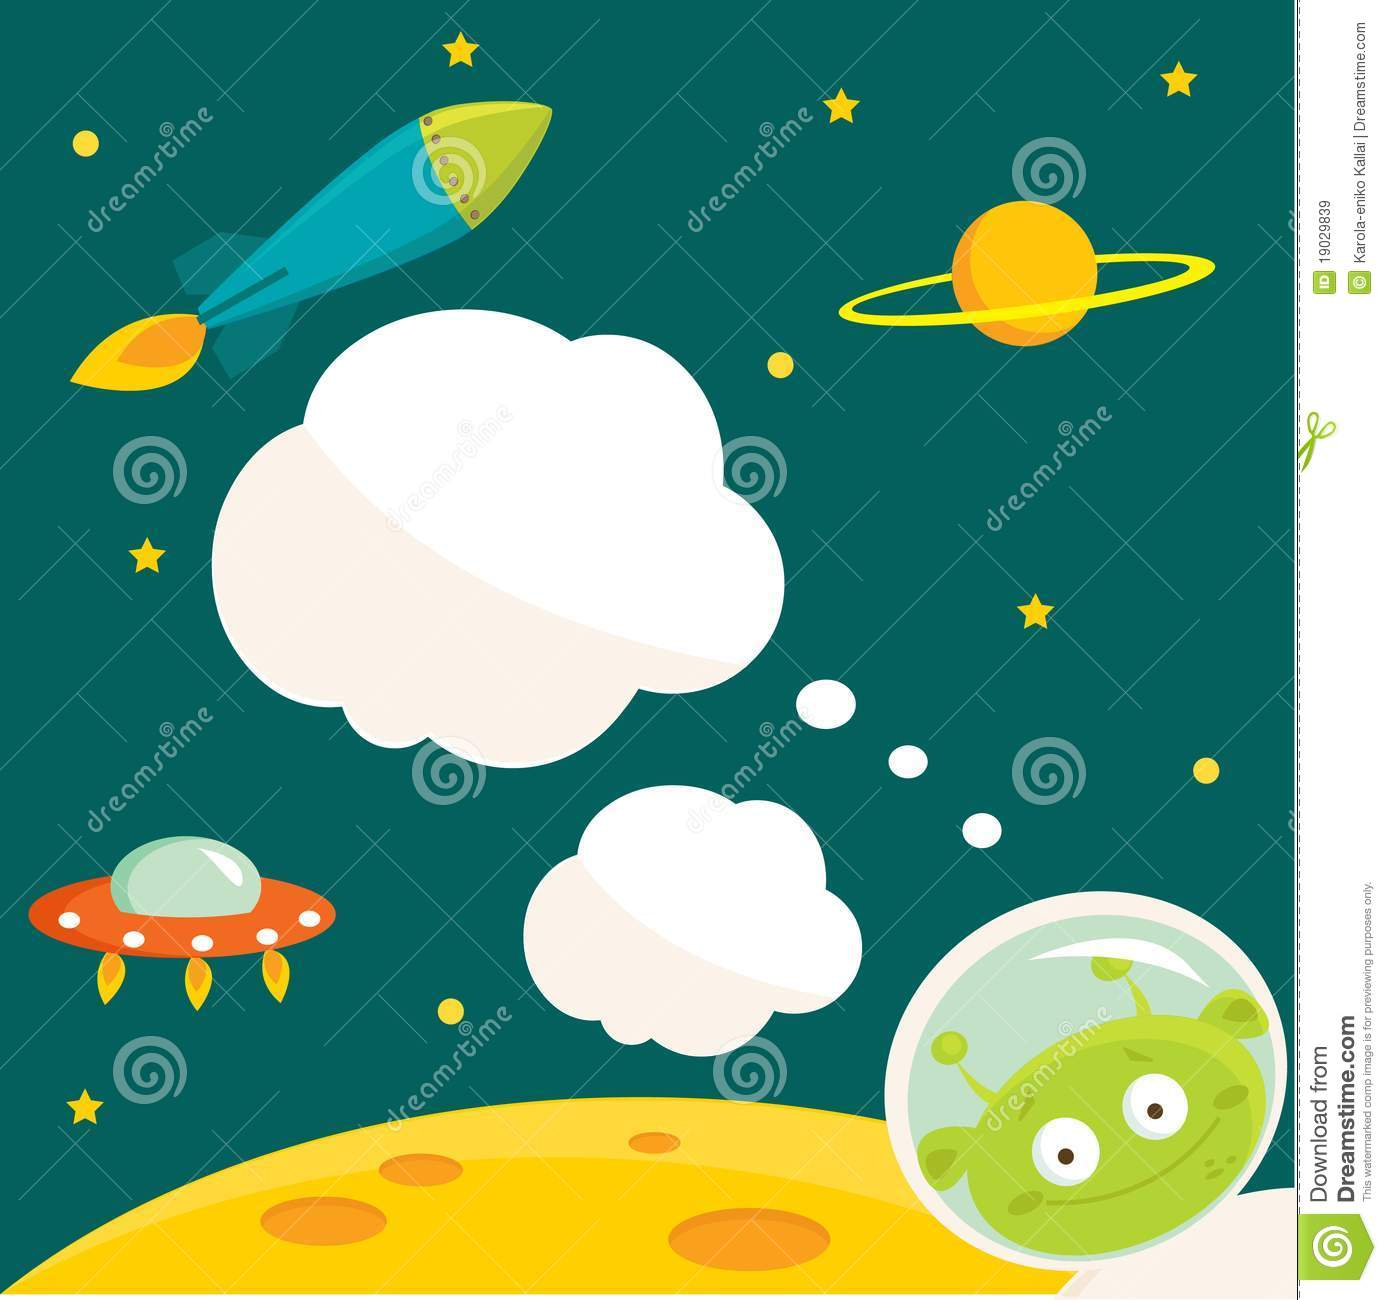 In Space Party Invitation Royalty Free Images Image 19029839 – Space Party Invitation